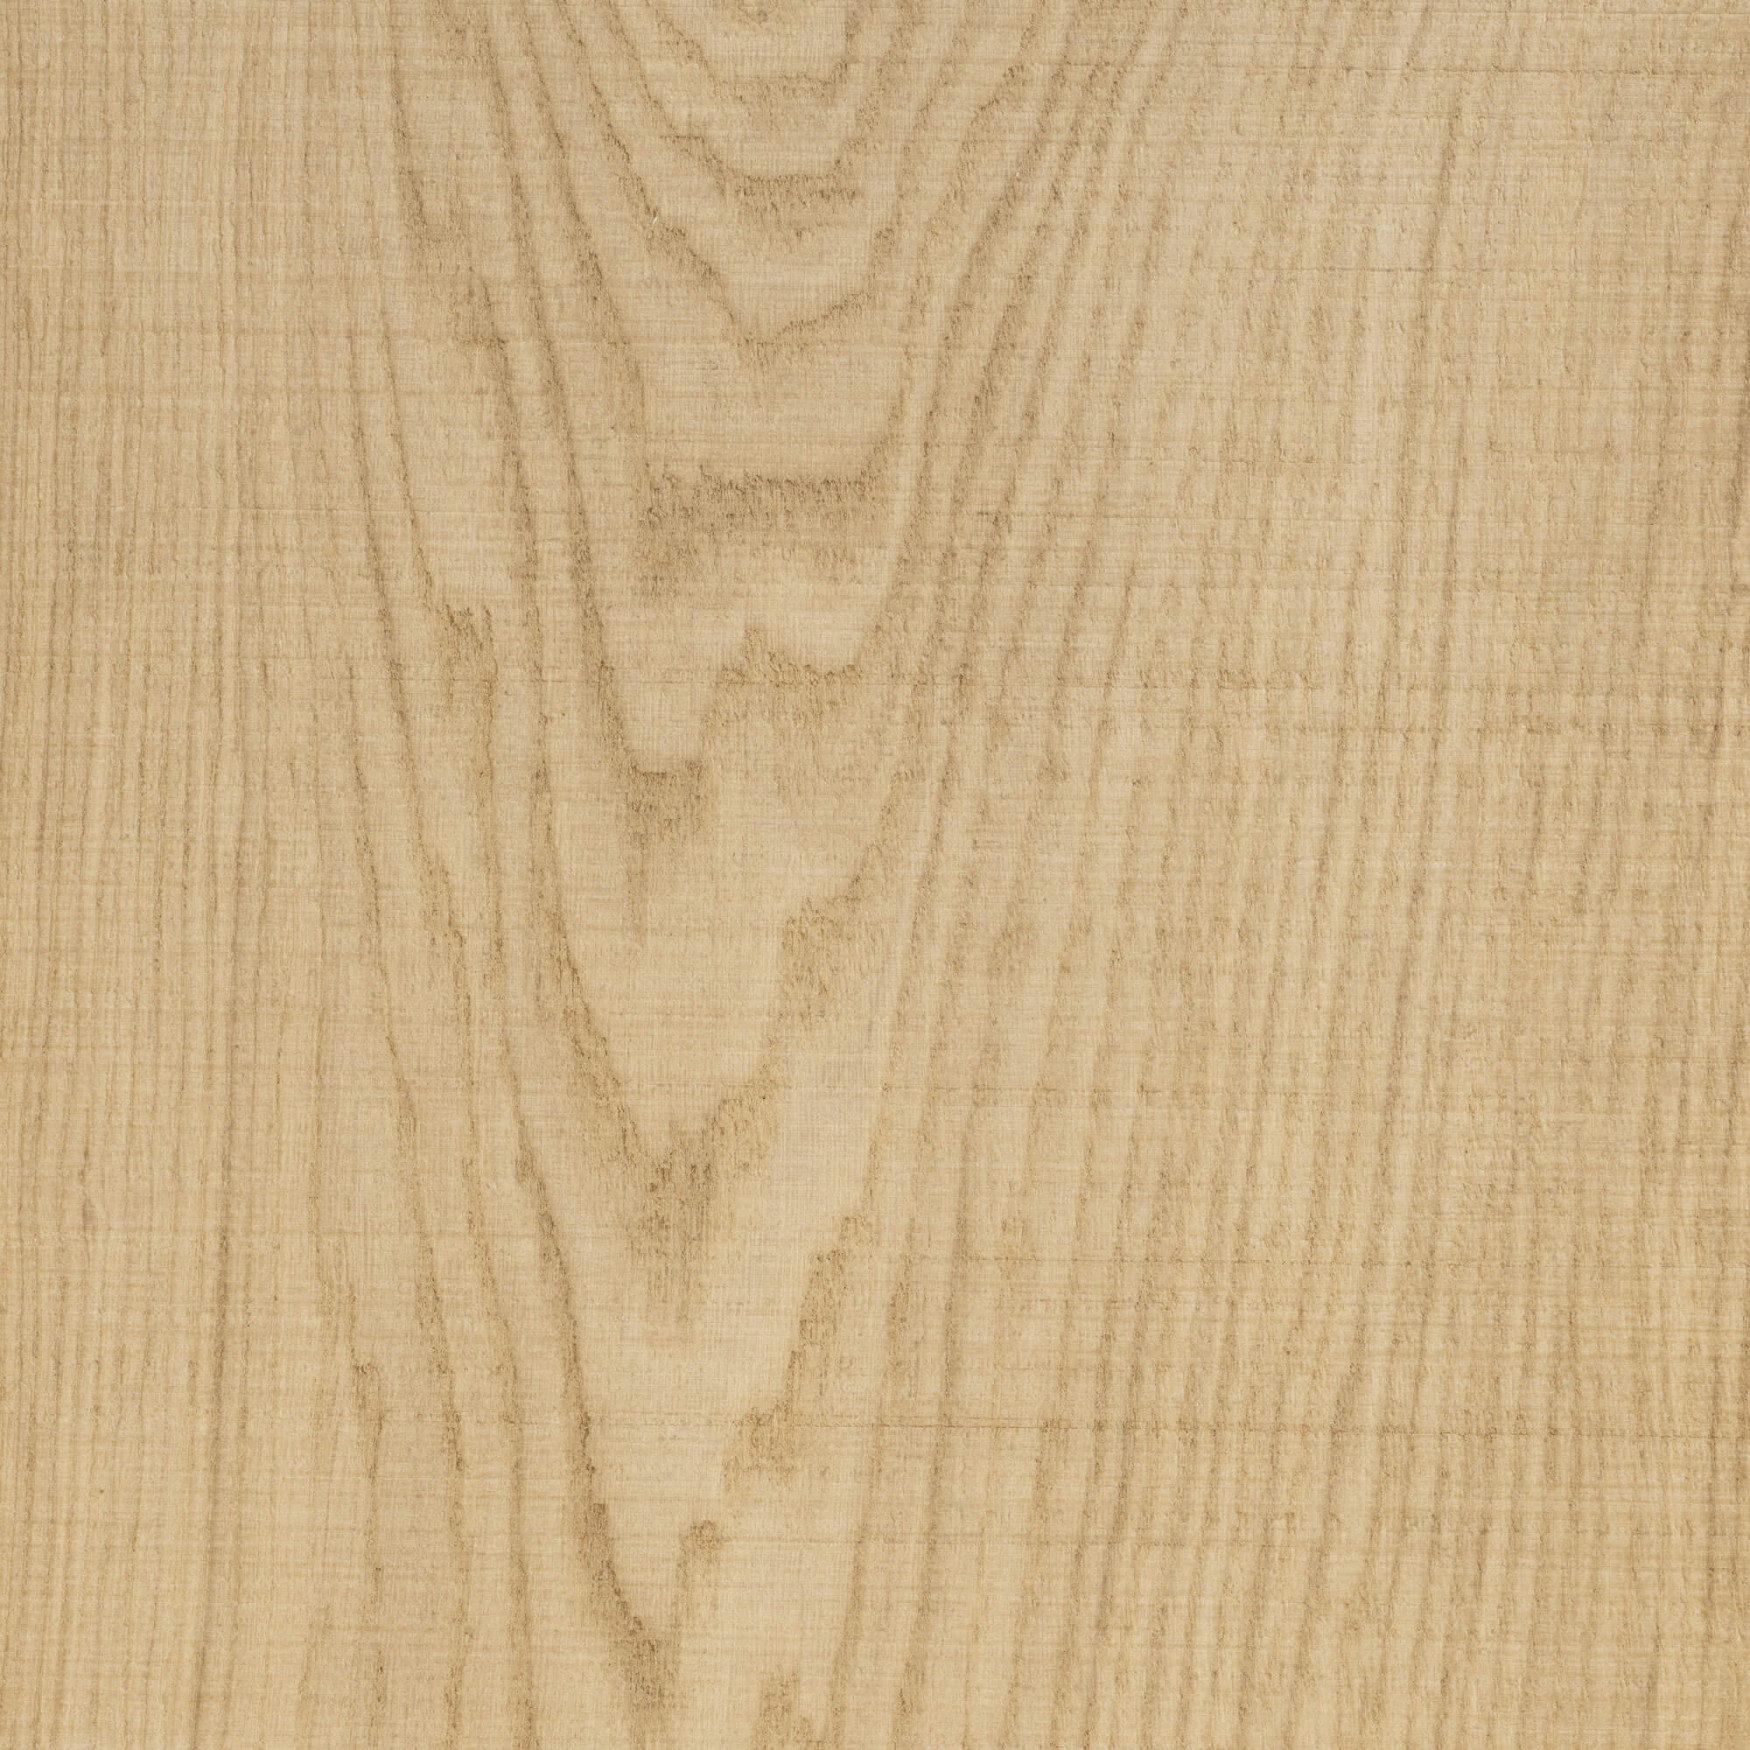 Element7-wide-plank-samples-RT-Raw-Oak